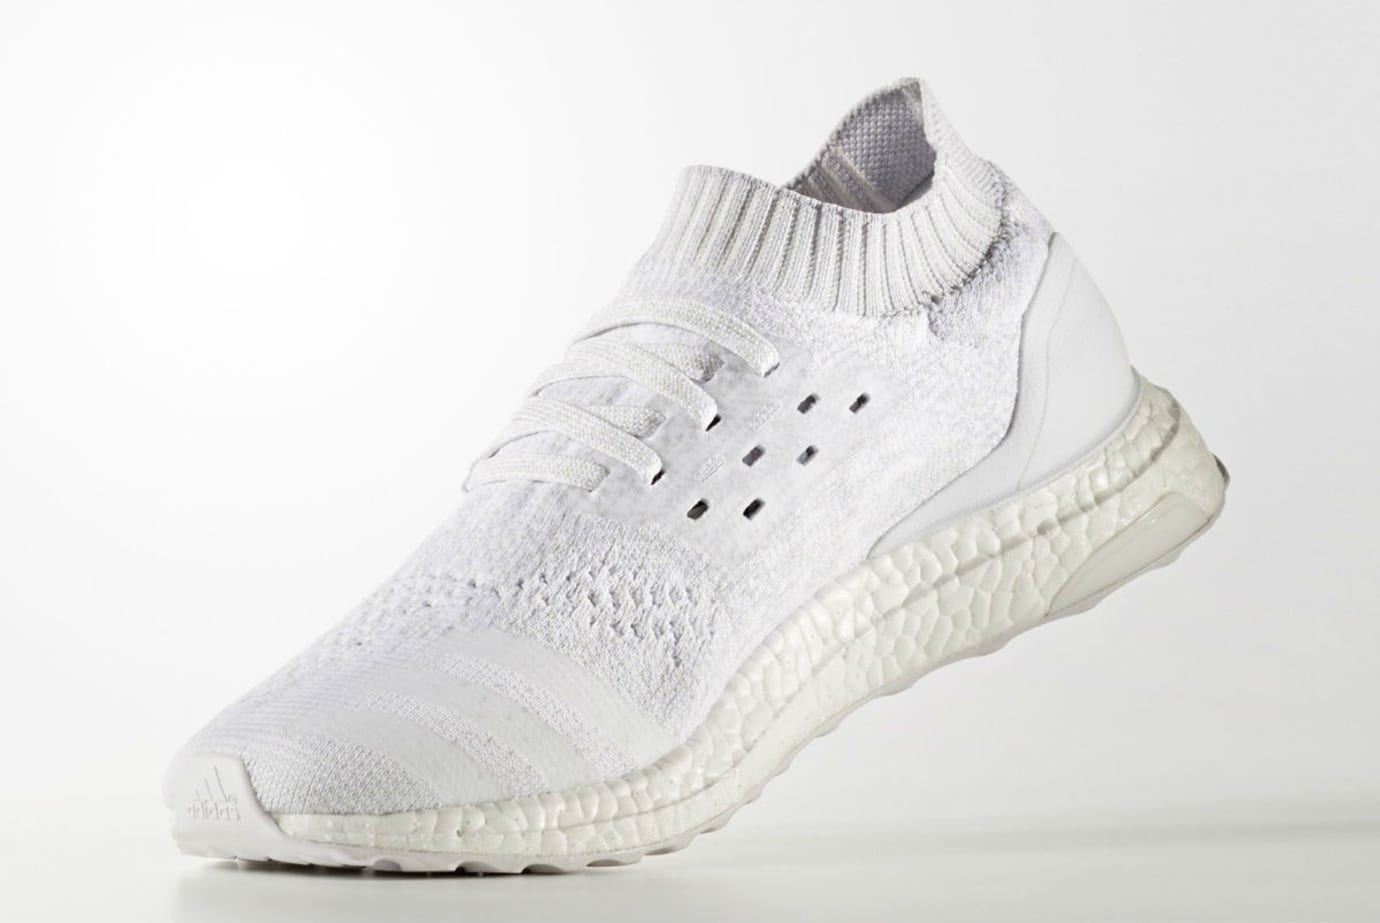 Adidas Ultra Boost Uncaged 2.0 White Release Date Medial